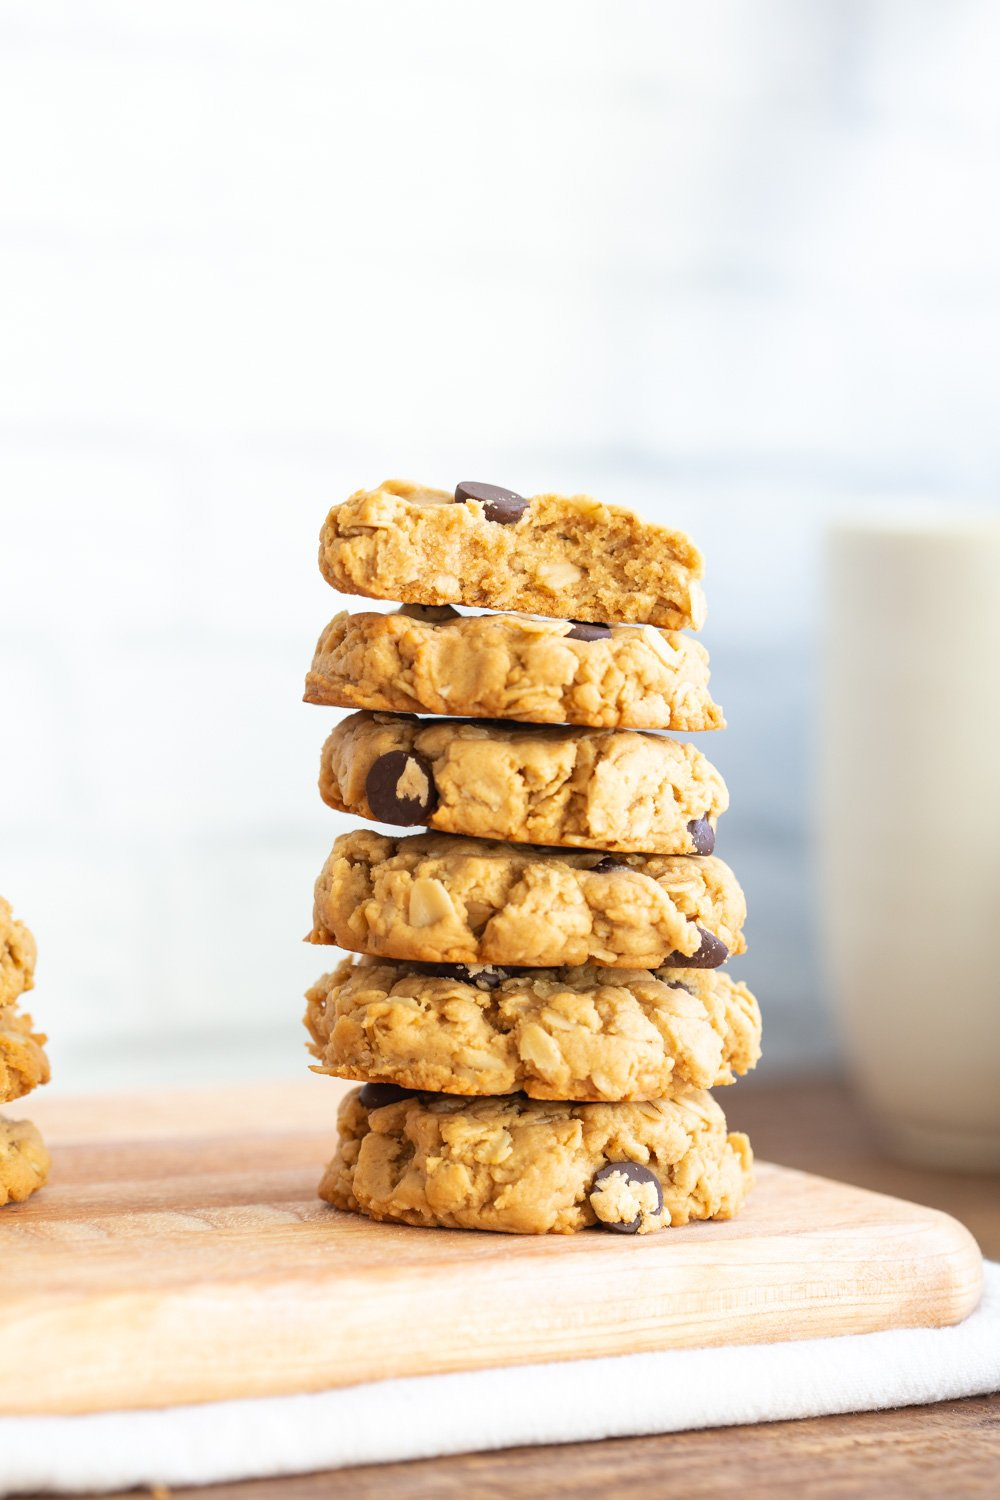 These Vegan Peanut Butter Oatmeal Chocolate Chip Cookies are melt in your mouth, delicious and hearty cookies. They need 1 Bowl, just 8 Ingredients and are ready within 30 Minutes. #Vegan #Soyfree #Recipe #Glutenfreeoption #refinedsugarfree #refinedoilfree #VeganRicha #peanutbutteroatmealchocolatechipcookie #veganpeanutbutteratmealcookie